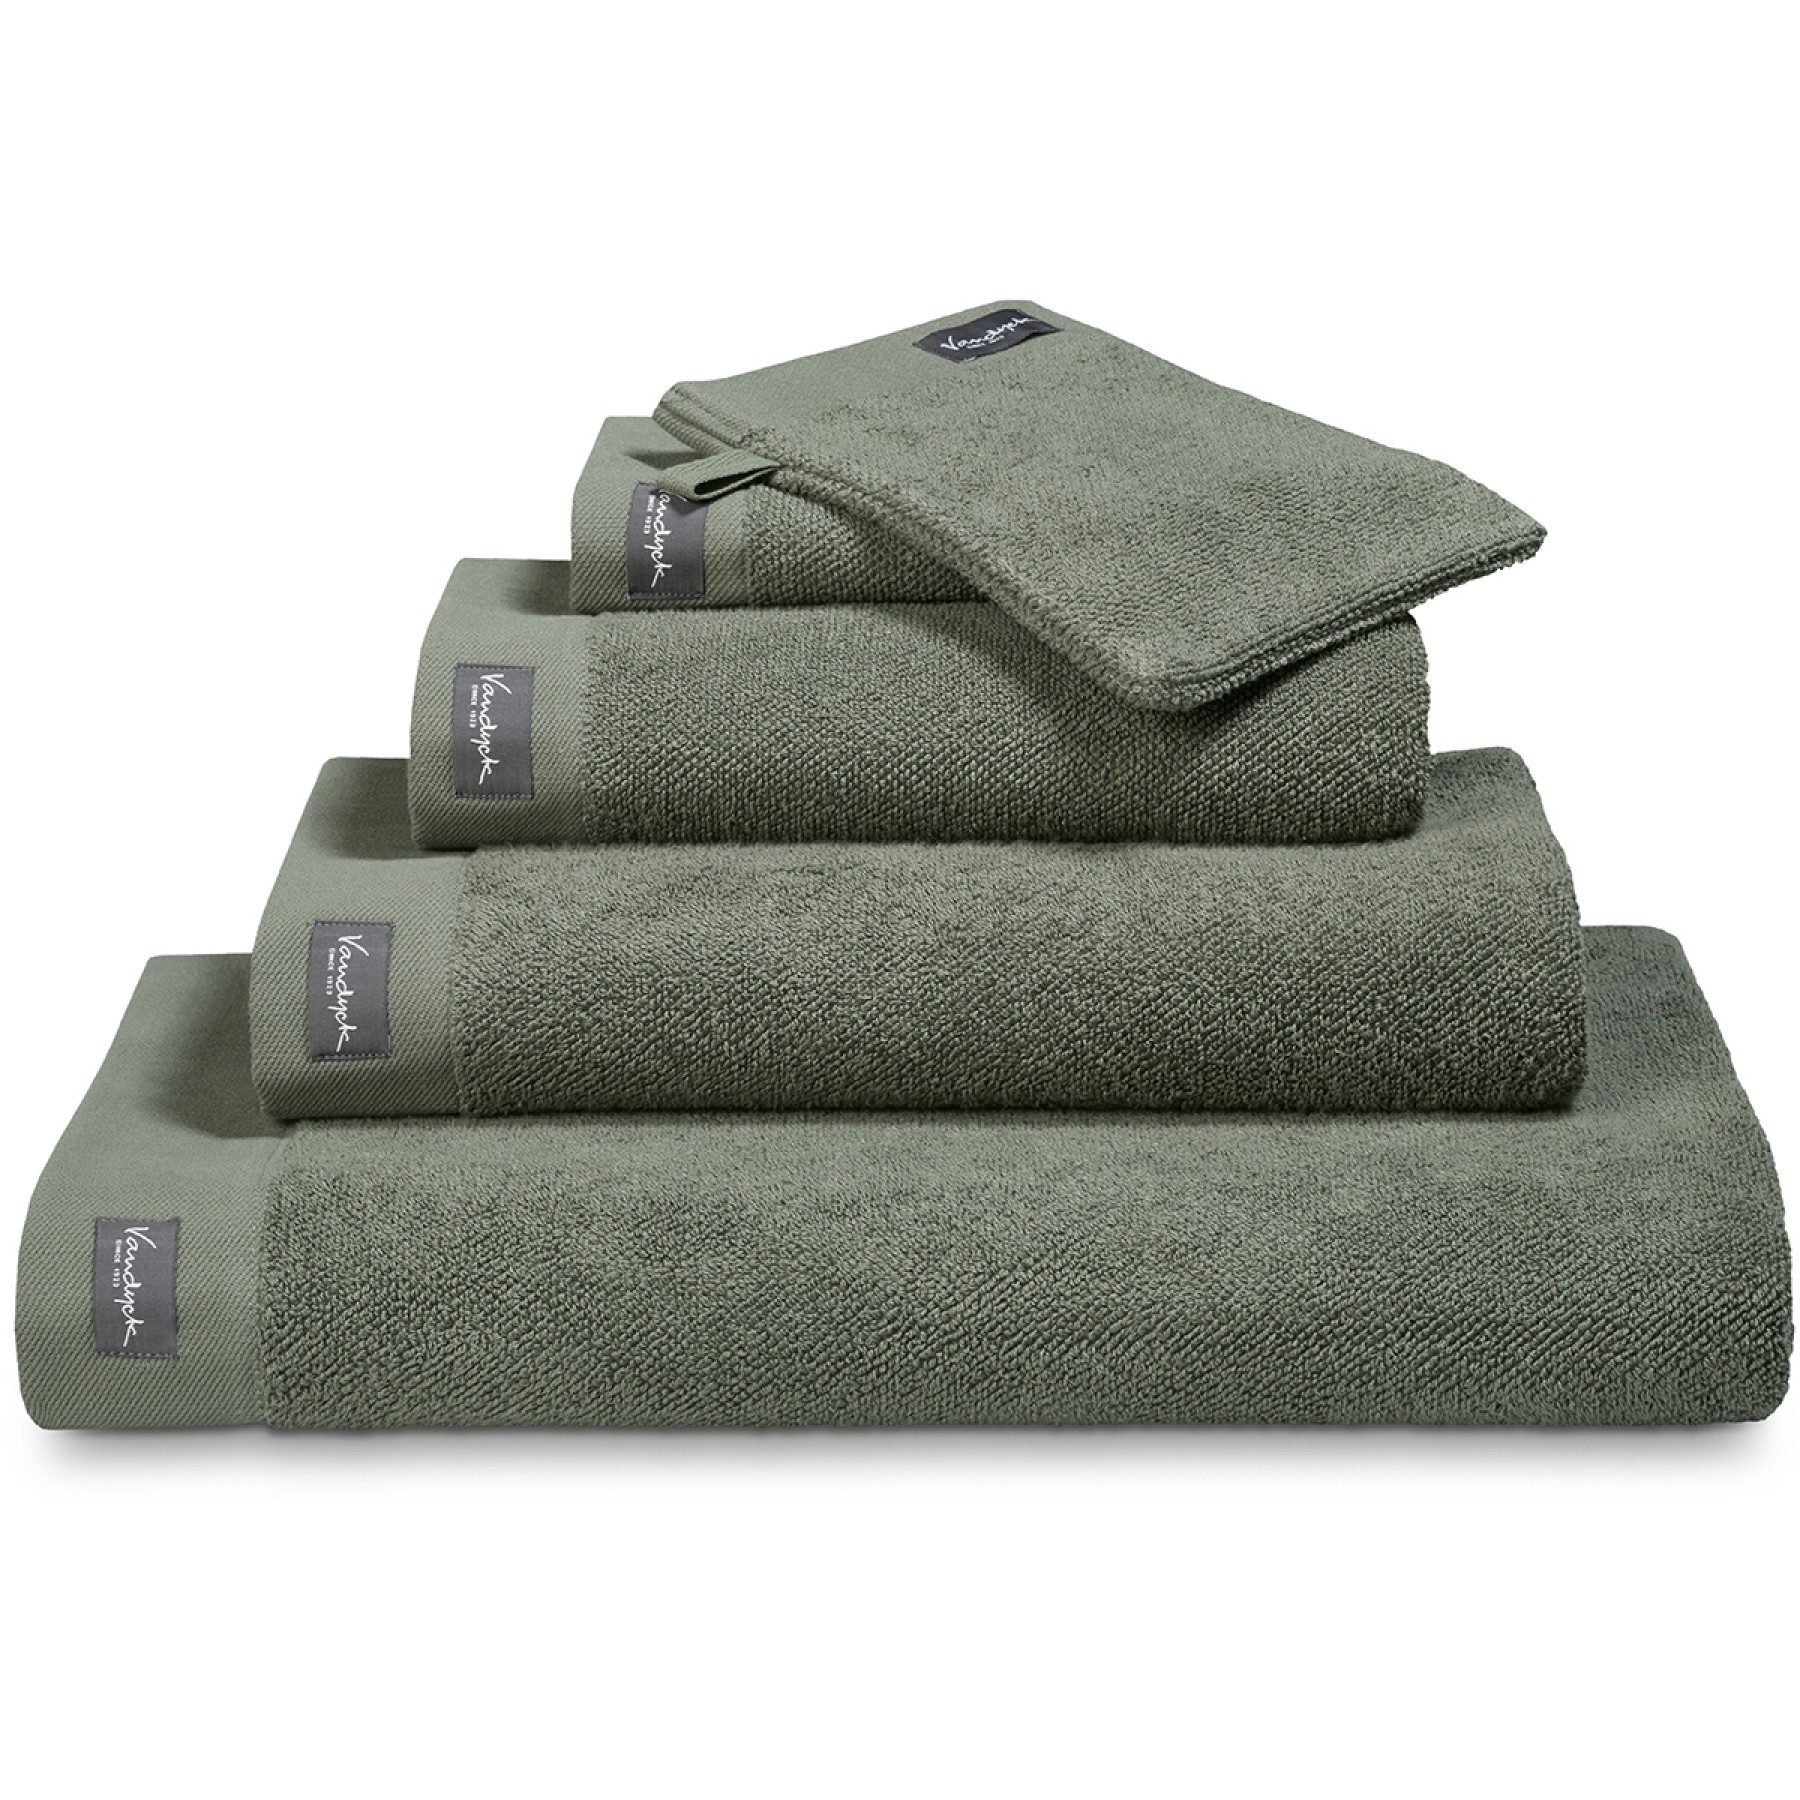 Vandyck Badlaken Uni Home Collection Olive